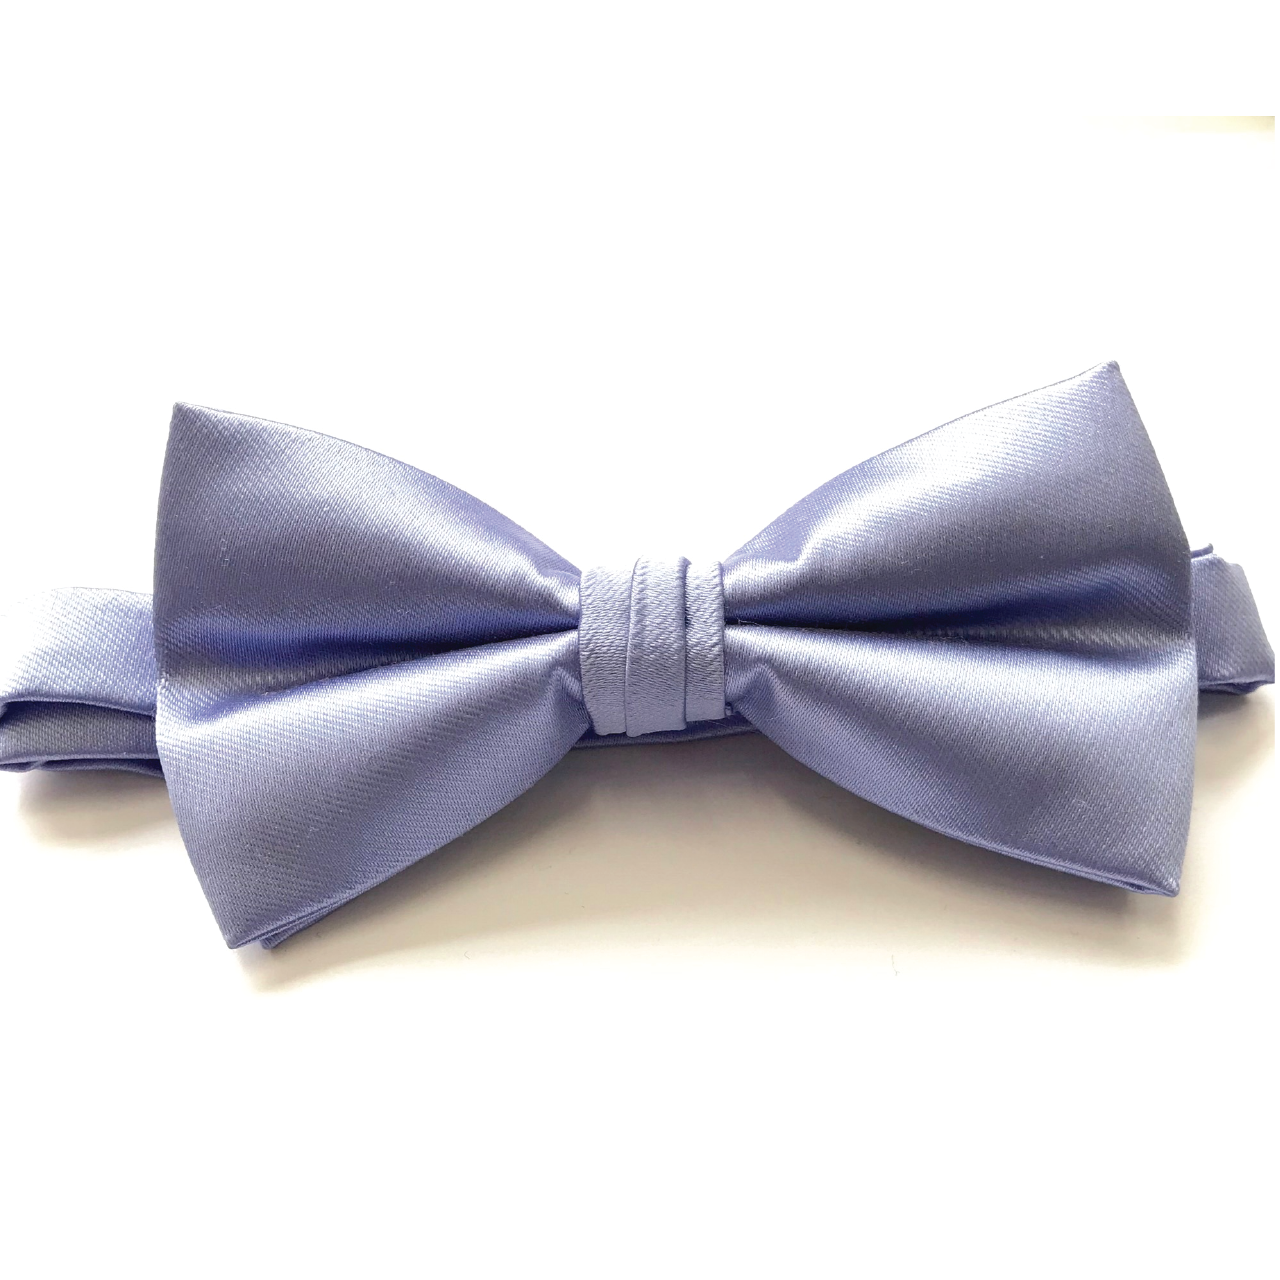 ffbb56b2d87f Accessories; LIGHT BLUE SATIN BOW TIE (PRE-TIED). Image 1